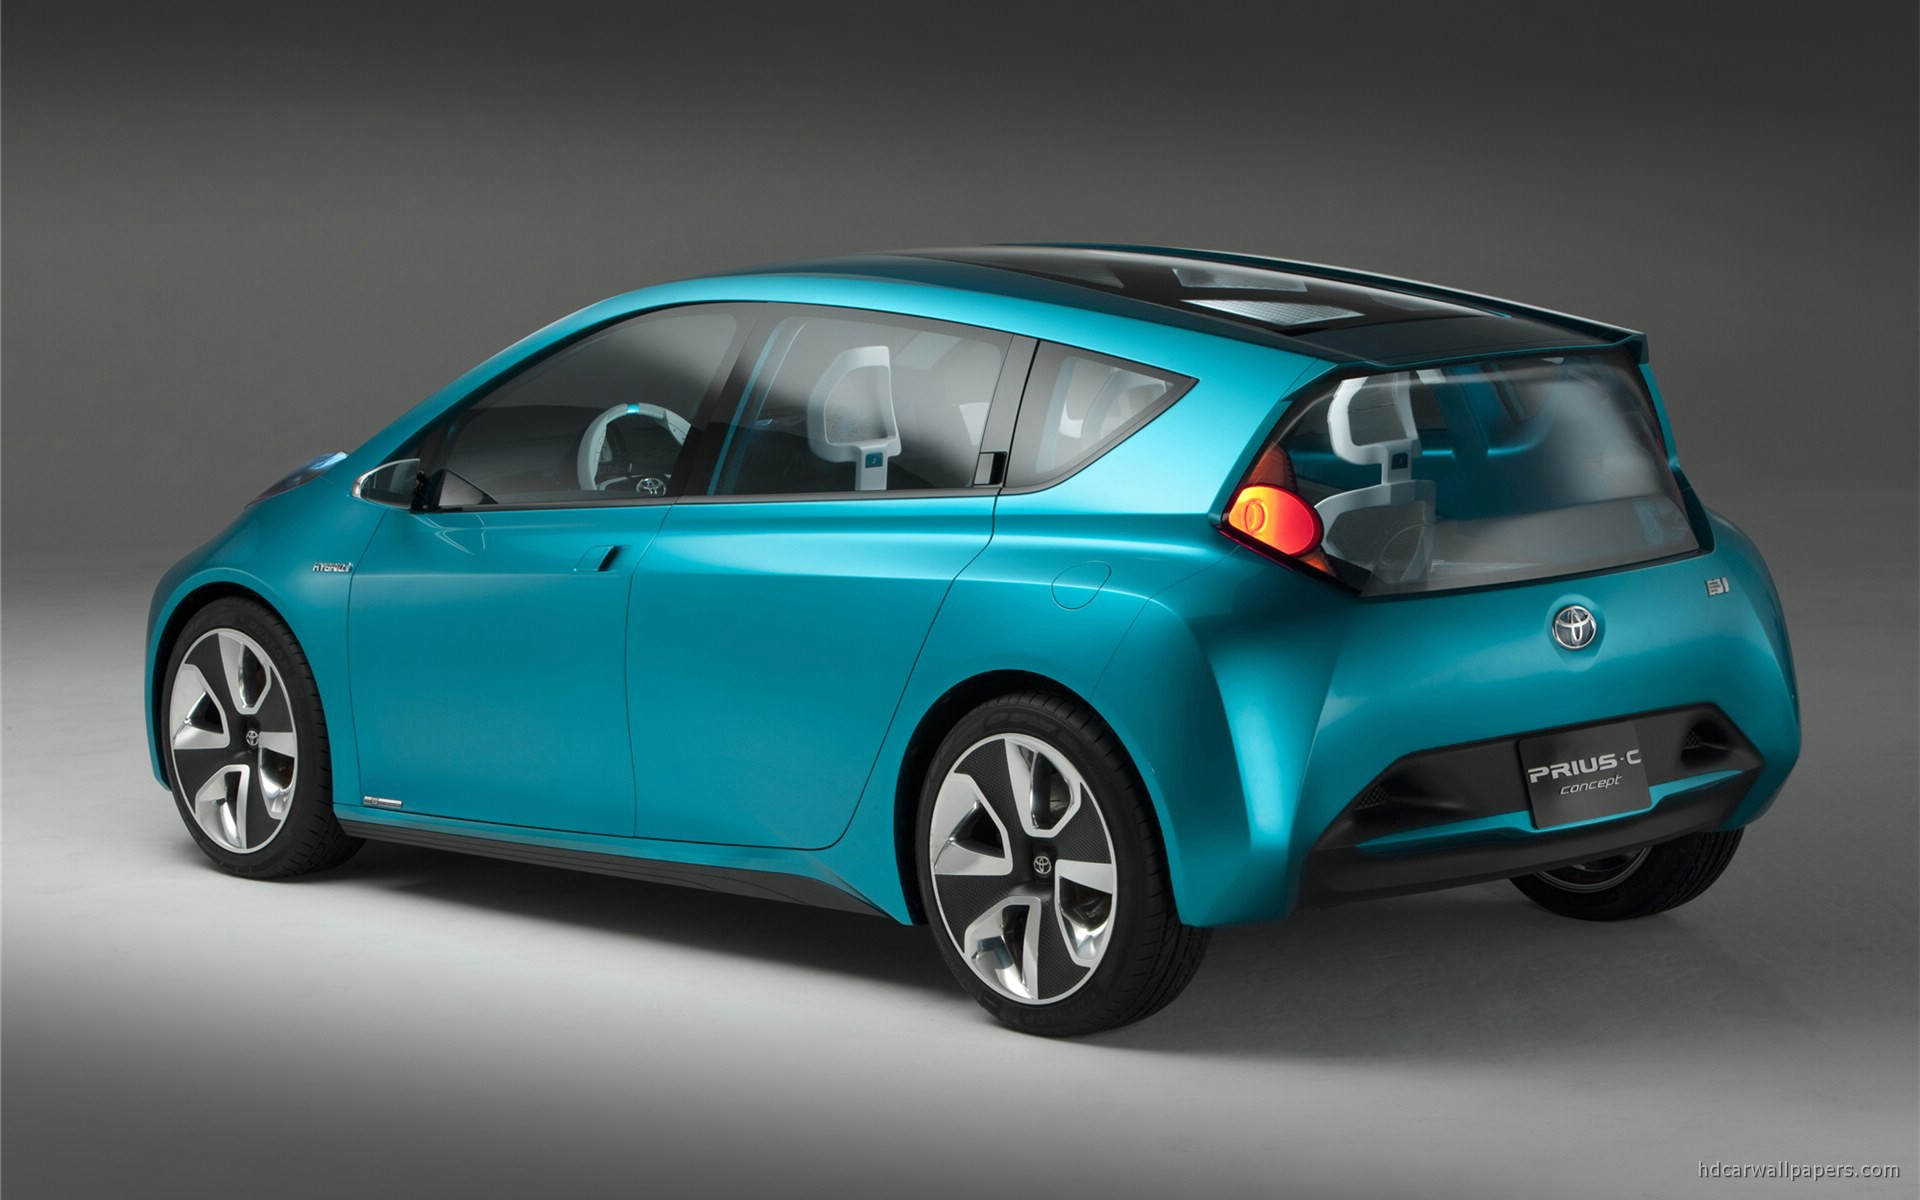 2017 Toyota Prius C Concept 2 Wallpaper Hd Car Wallpapers Id 1878